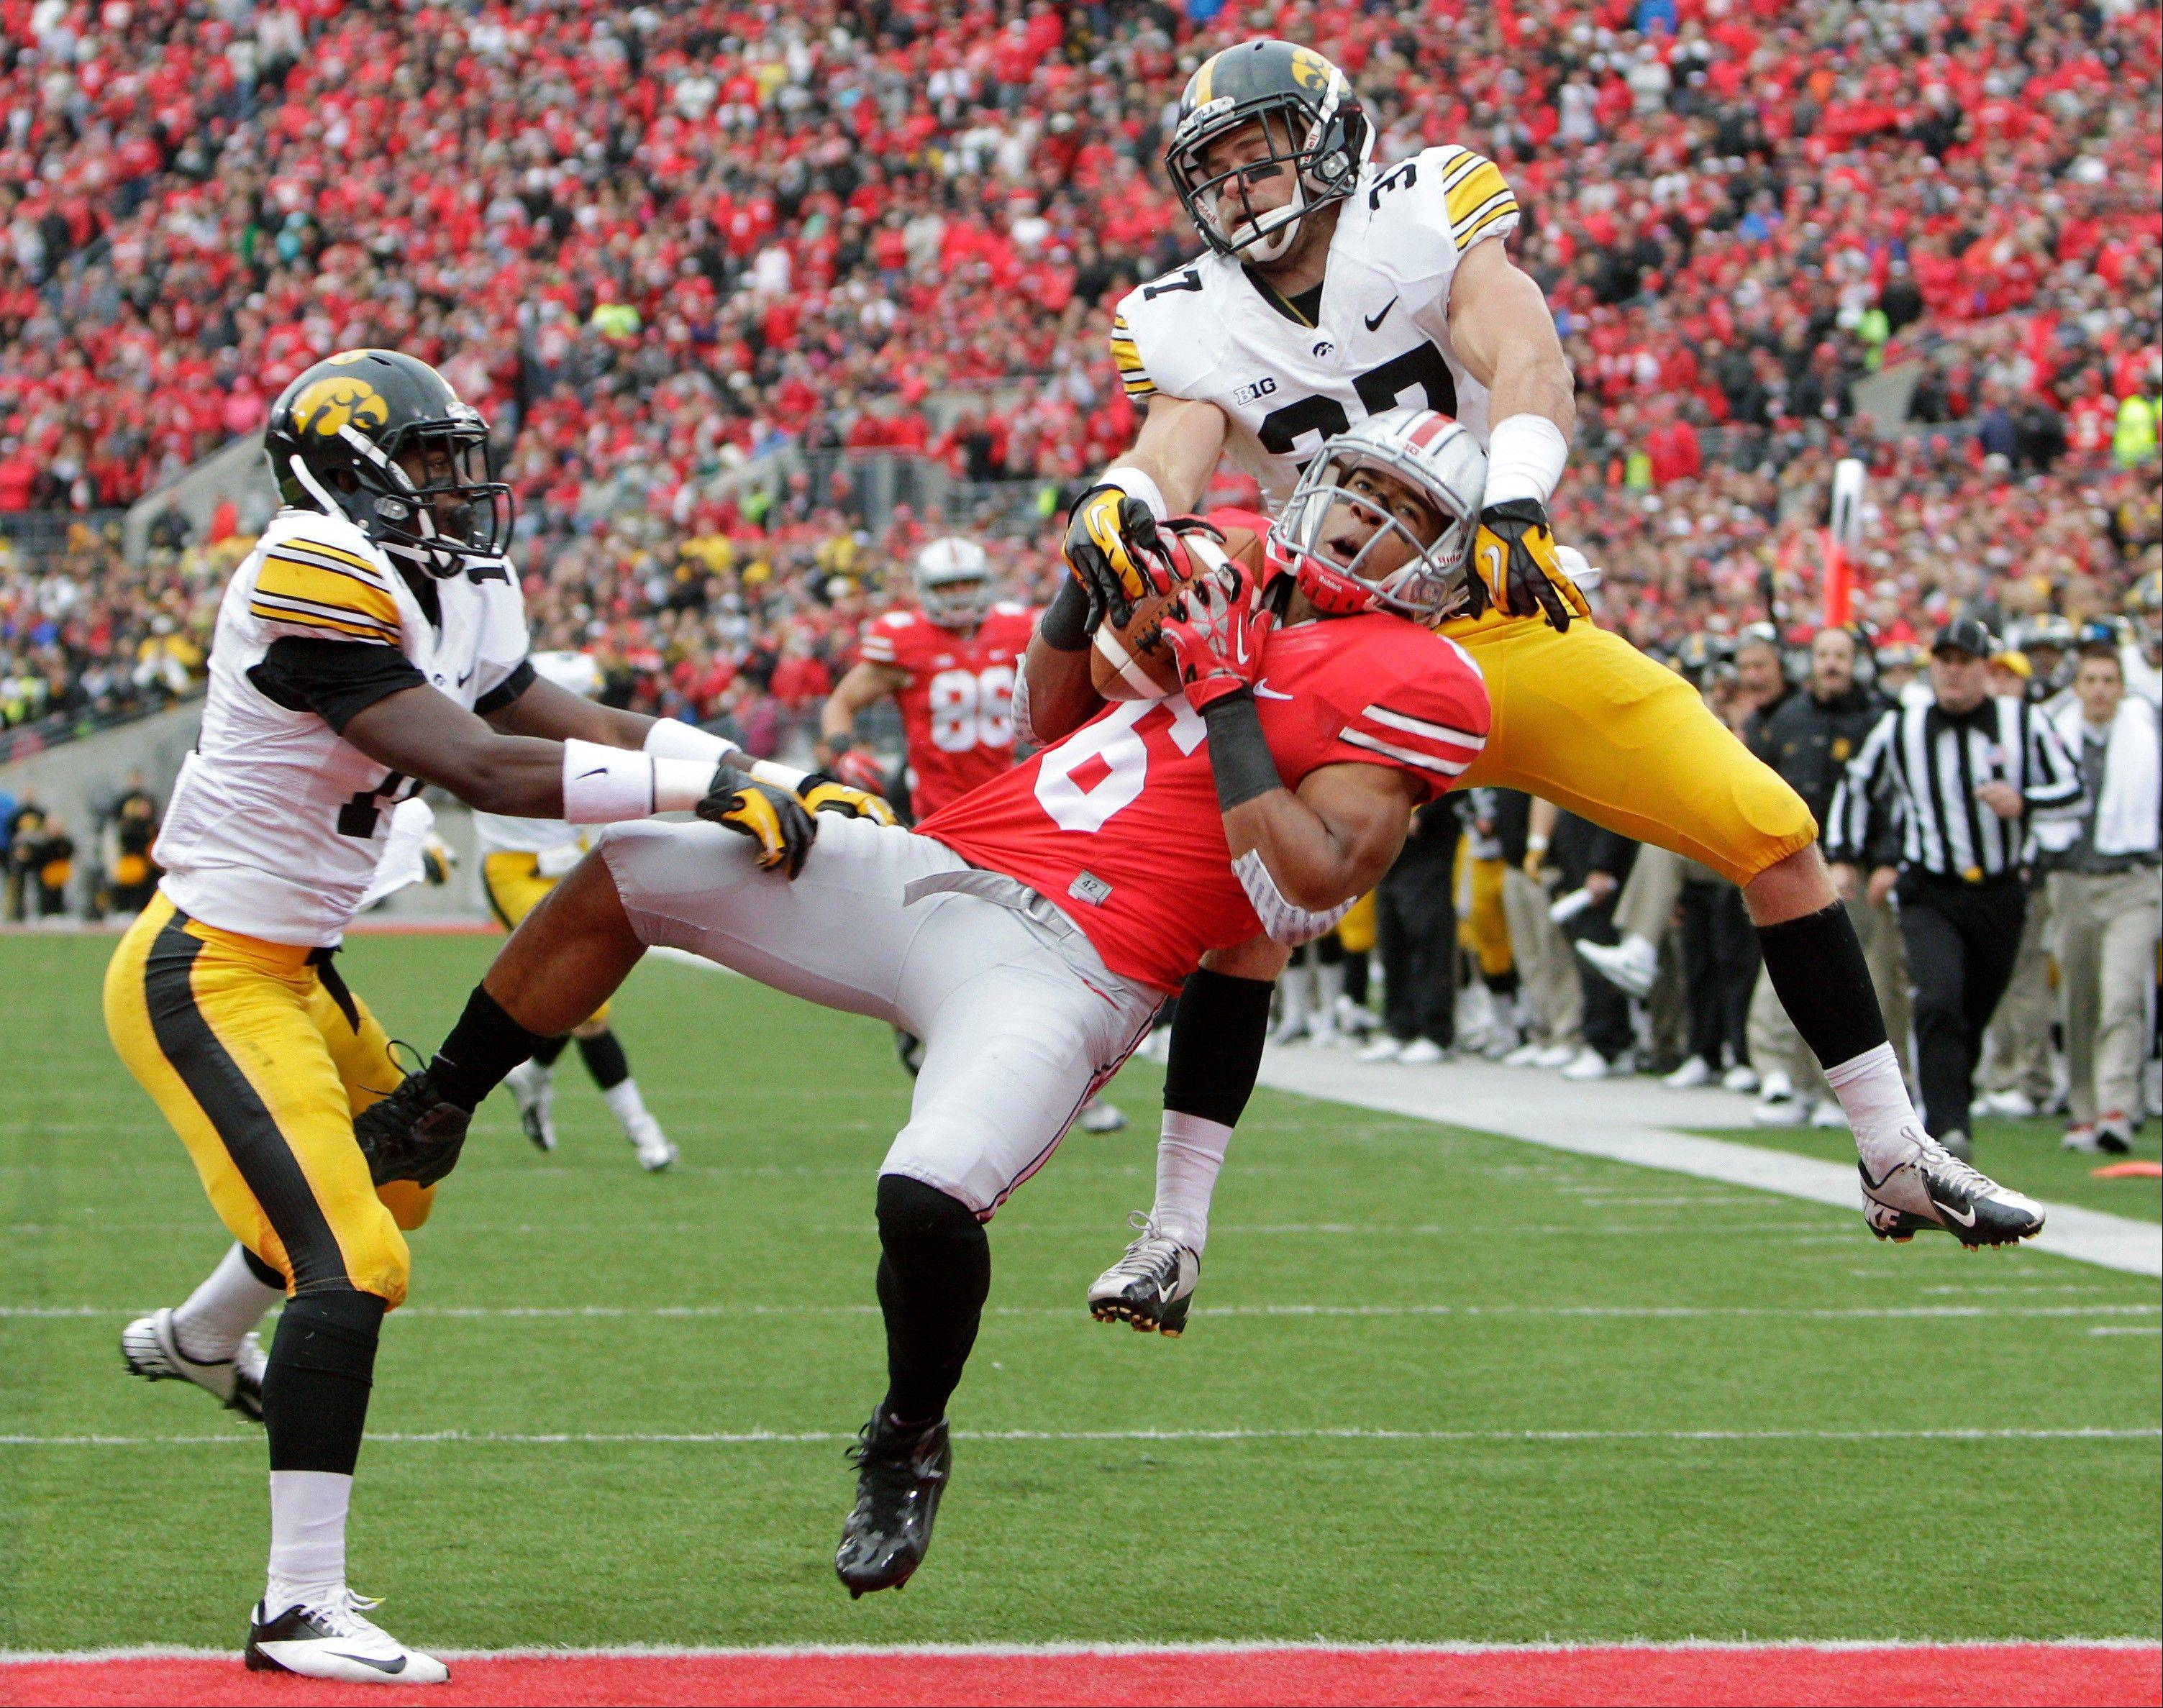 Iowa defensive backs Desmond King, left, and John Lowdermilk, right, break up a pass intended for Ohio State wide receiver Evan Spencer, center, during the second quarter in Columbus, Ohio.